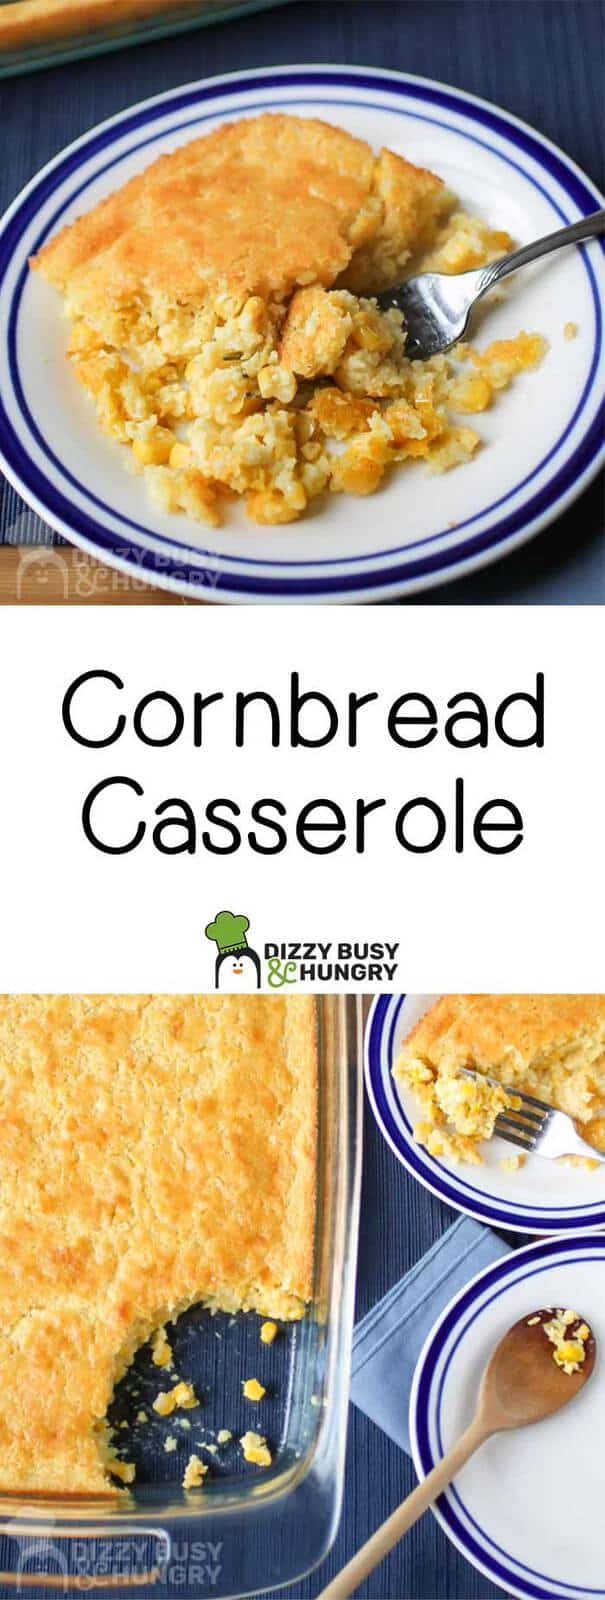 Two photos of cornbread casserole with text in the center for pinning on Pinterest